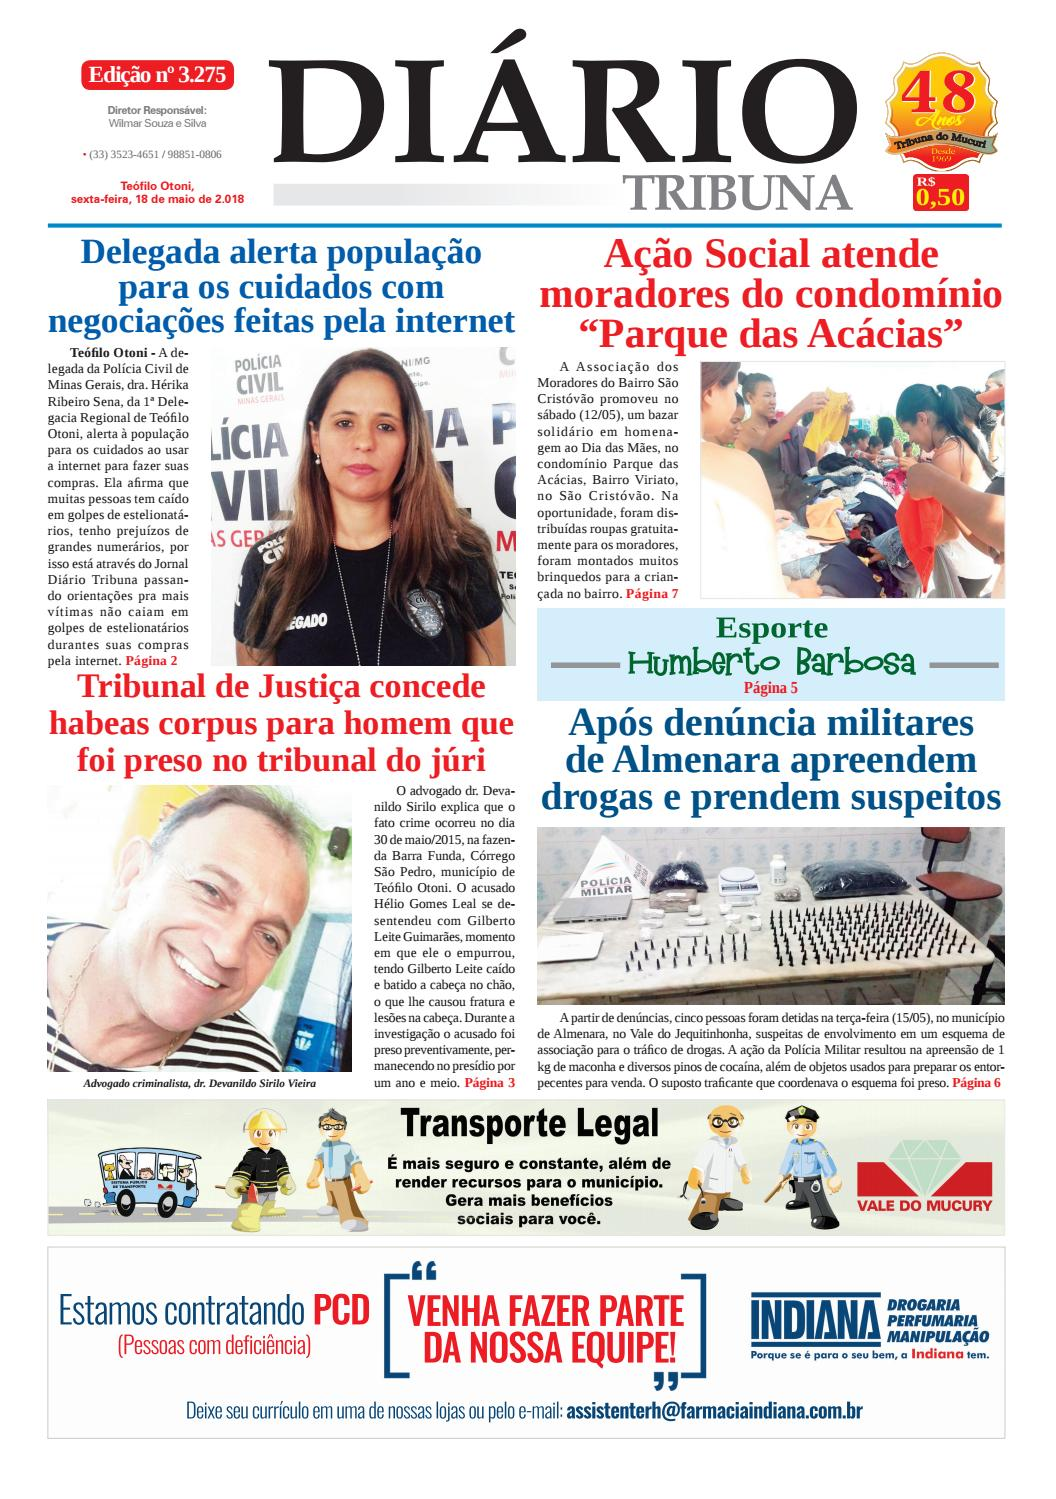 cf1ef753047 Diario do mucuri 18 mai 2018 final by Phillipy Lopes - issuu